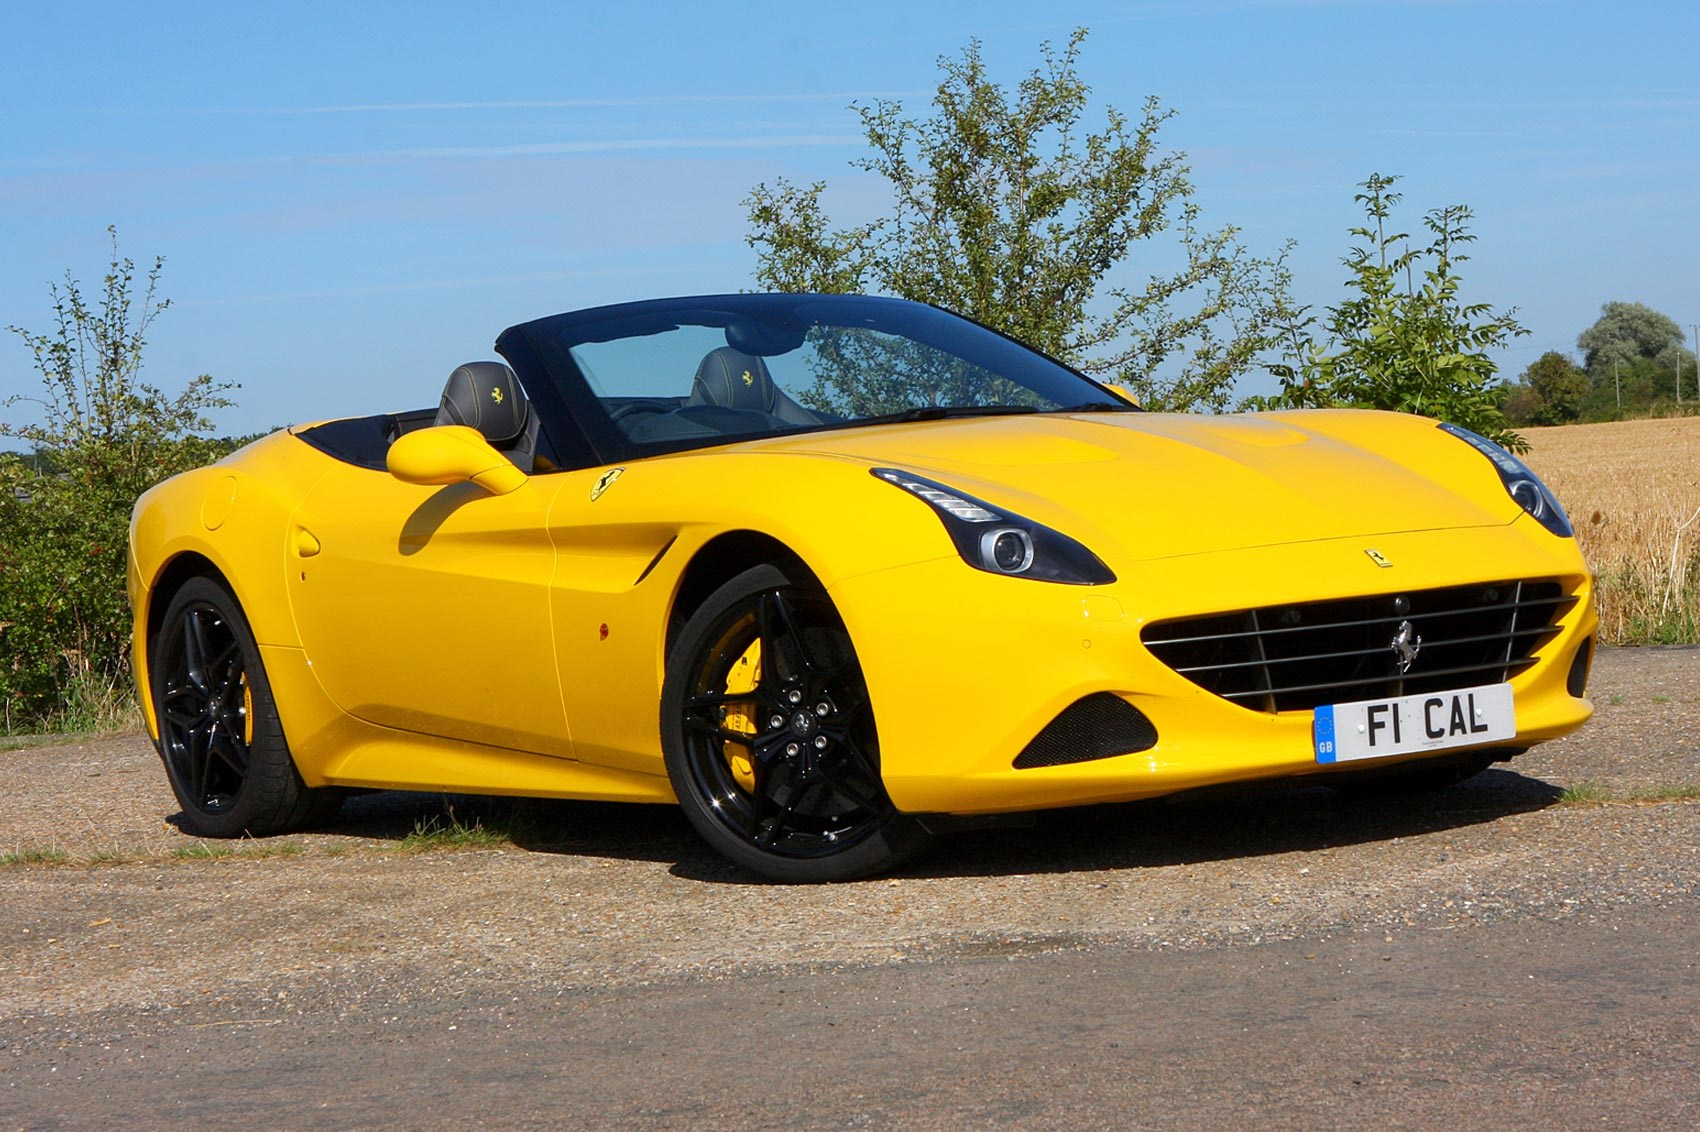 ferrari california t handling speciale 2016 uk review by car magazine. Black Bedroom Furniture Sets. Home Design Ideas